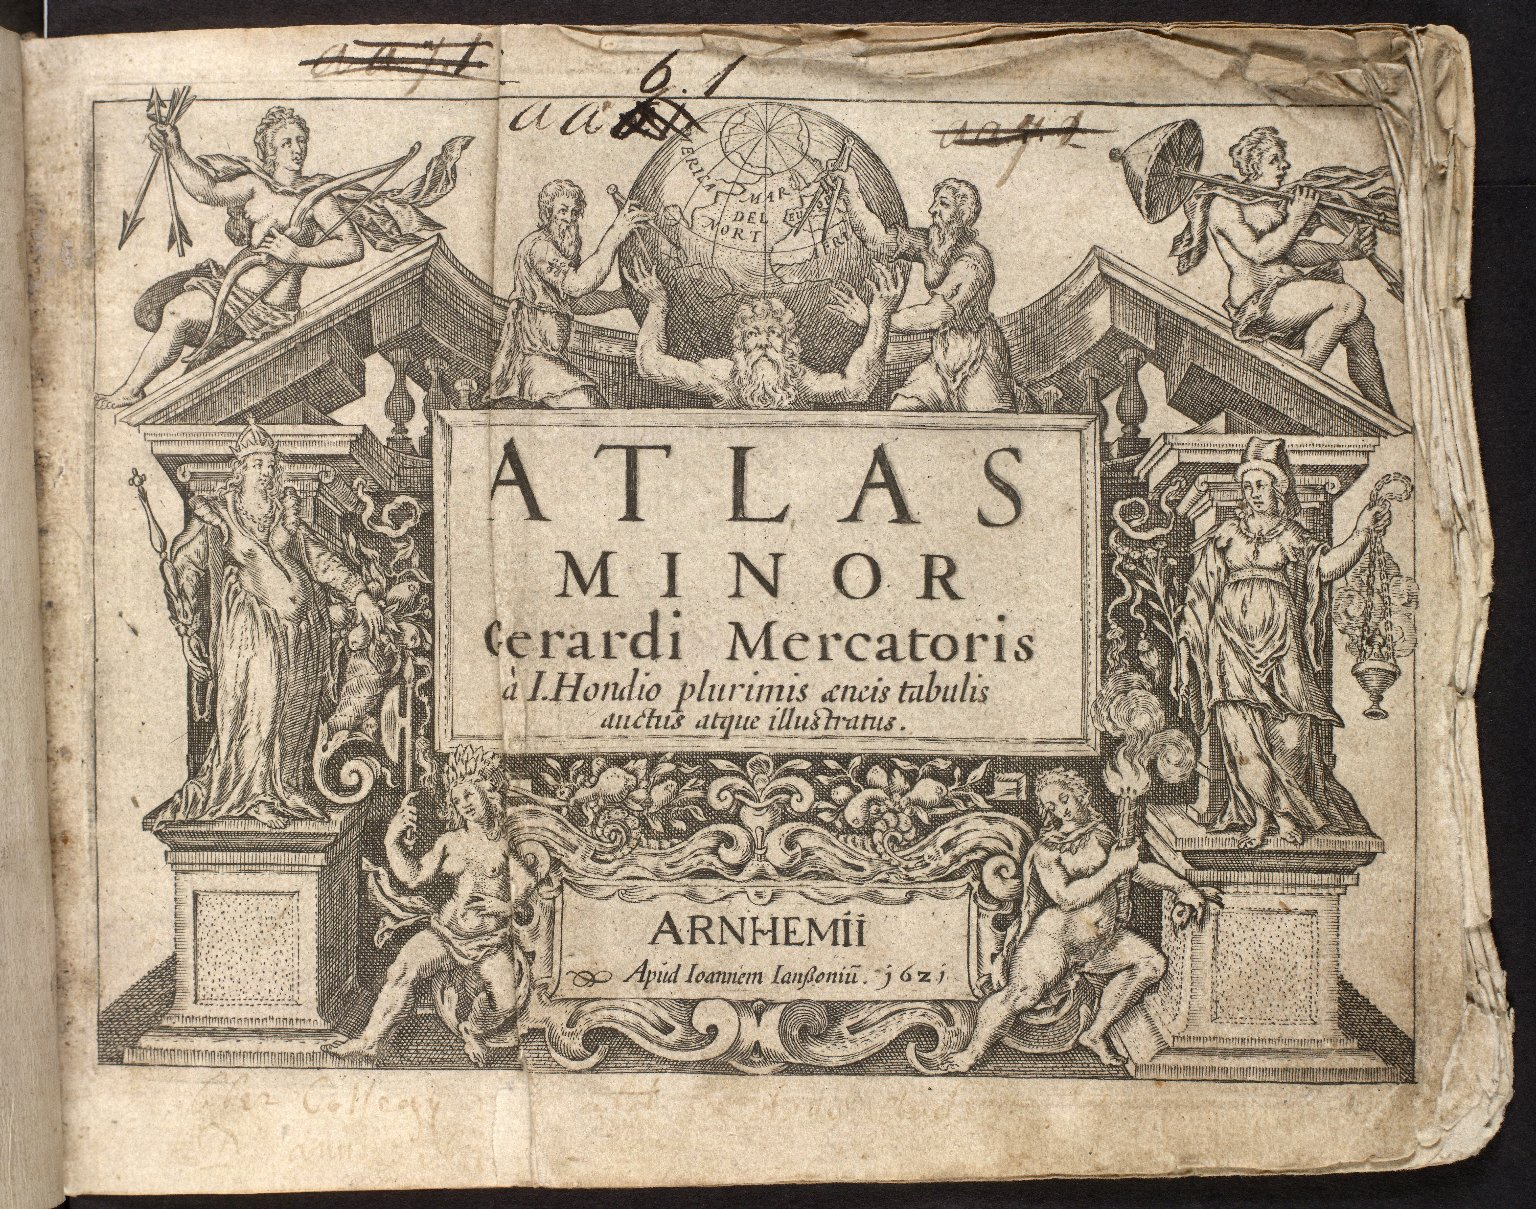 Atlas minor Gerardi mercatoris a I. Hondio [i.e. Hondius] plurumis ancis tabulis auctus atque illustratus [1 of 1]